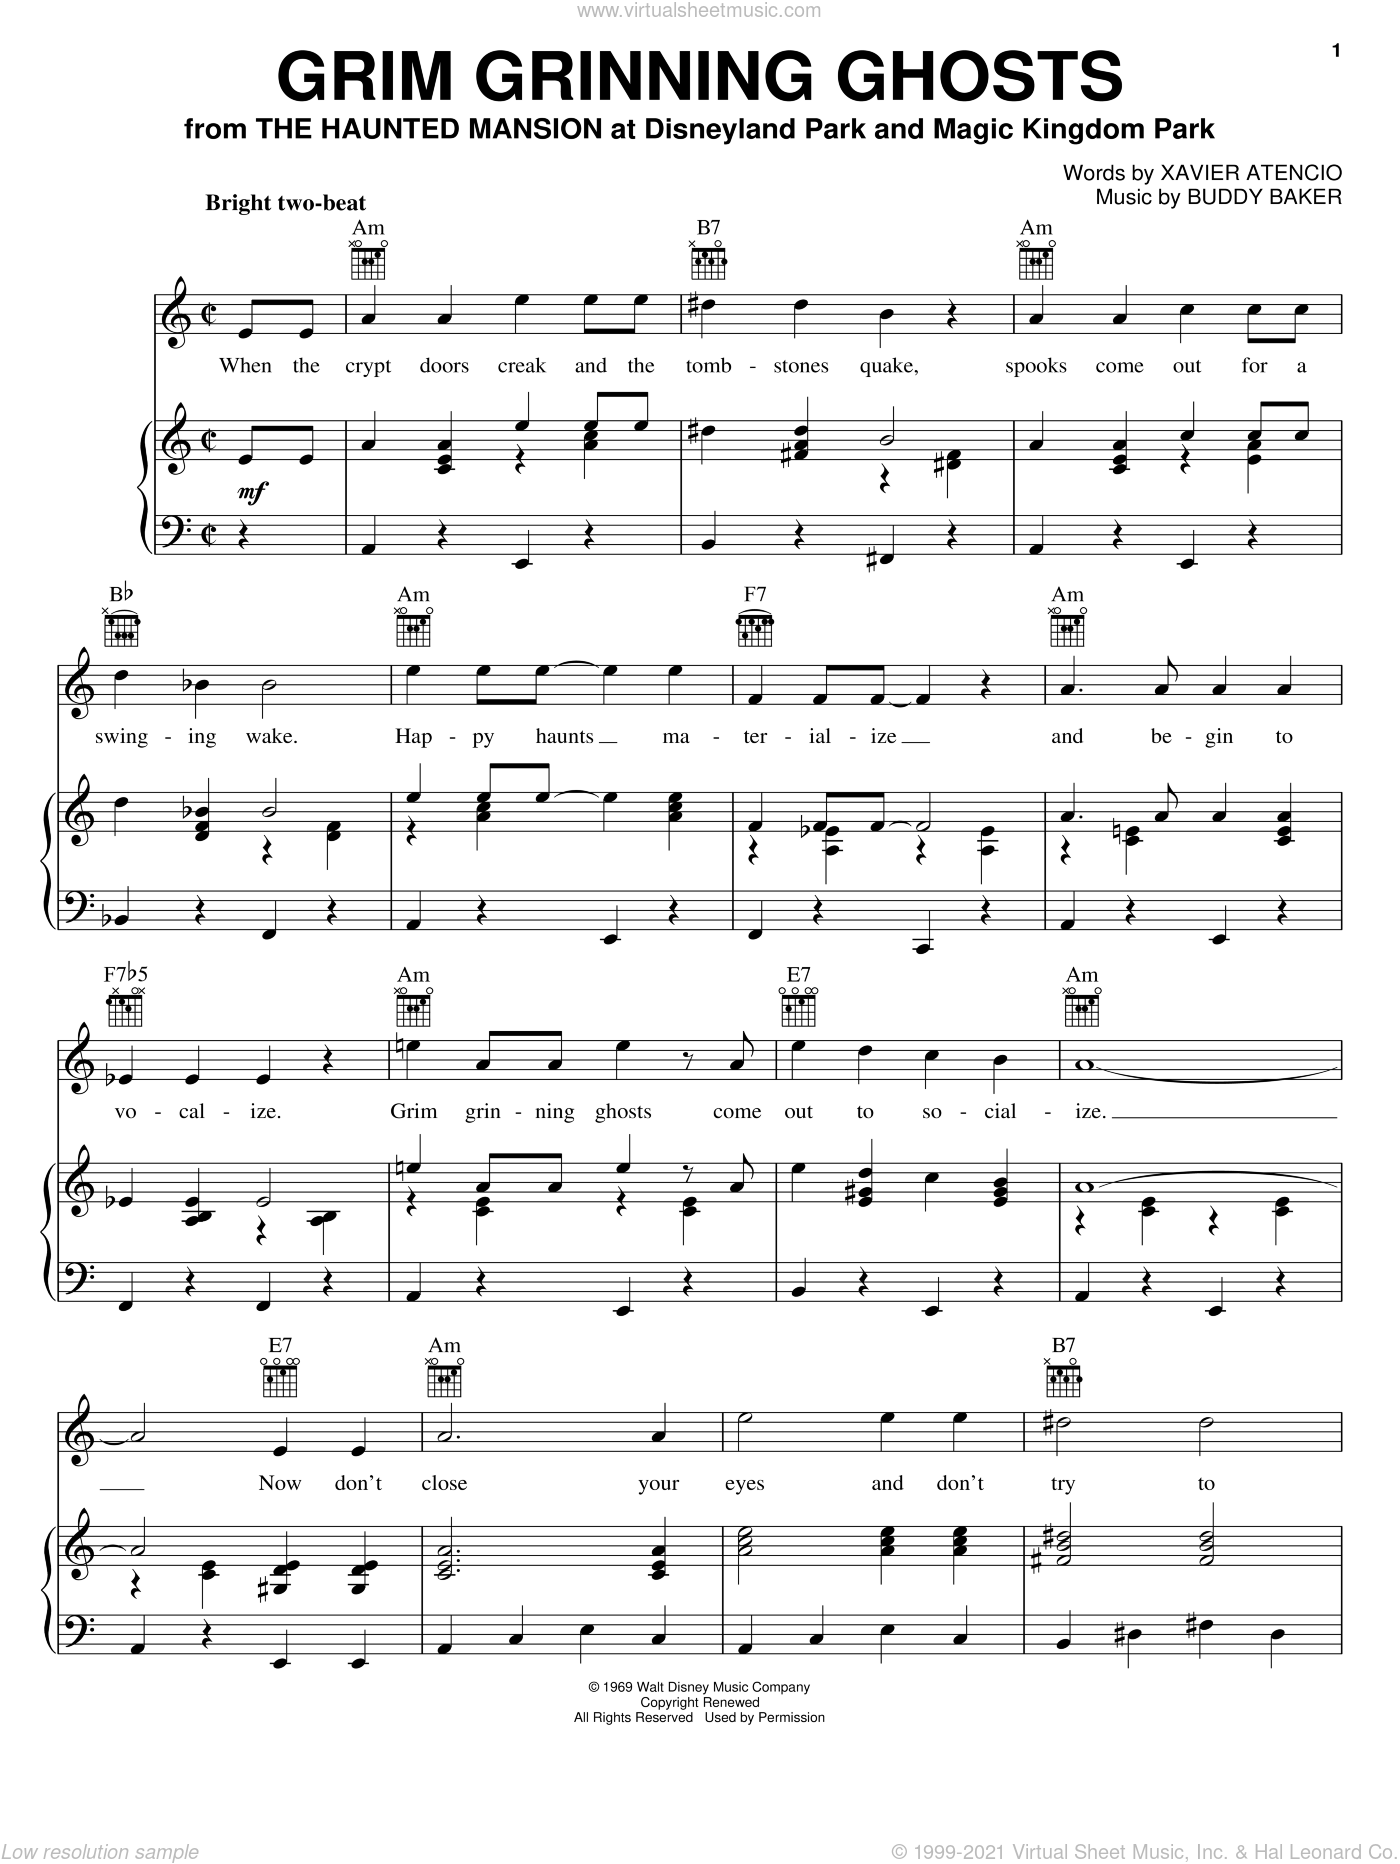 Grim Grinning Ghosts sheet music for voice, piano or guitar by Buddy Baker